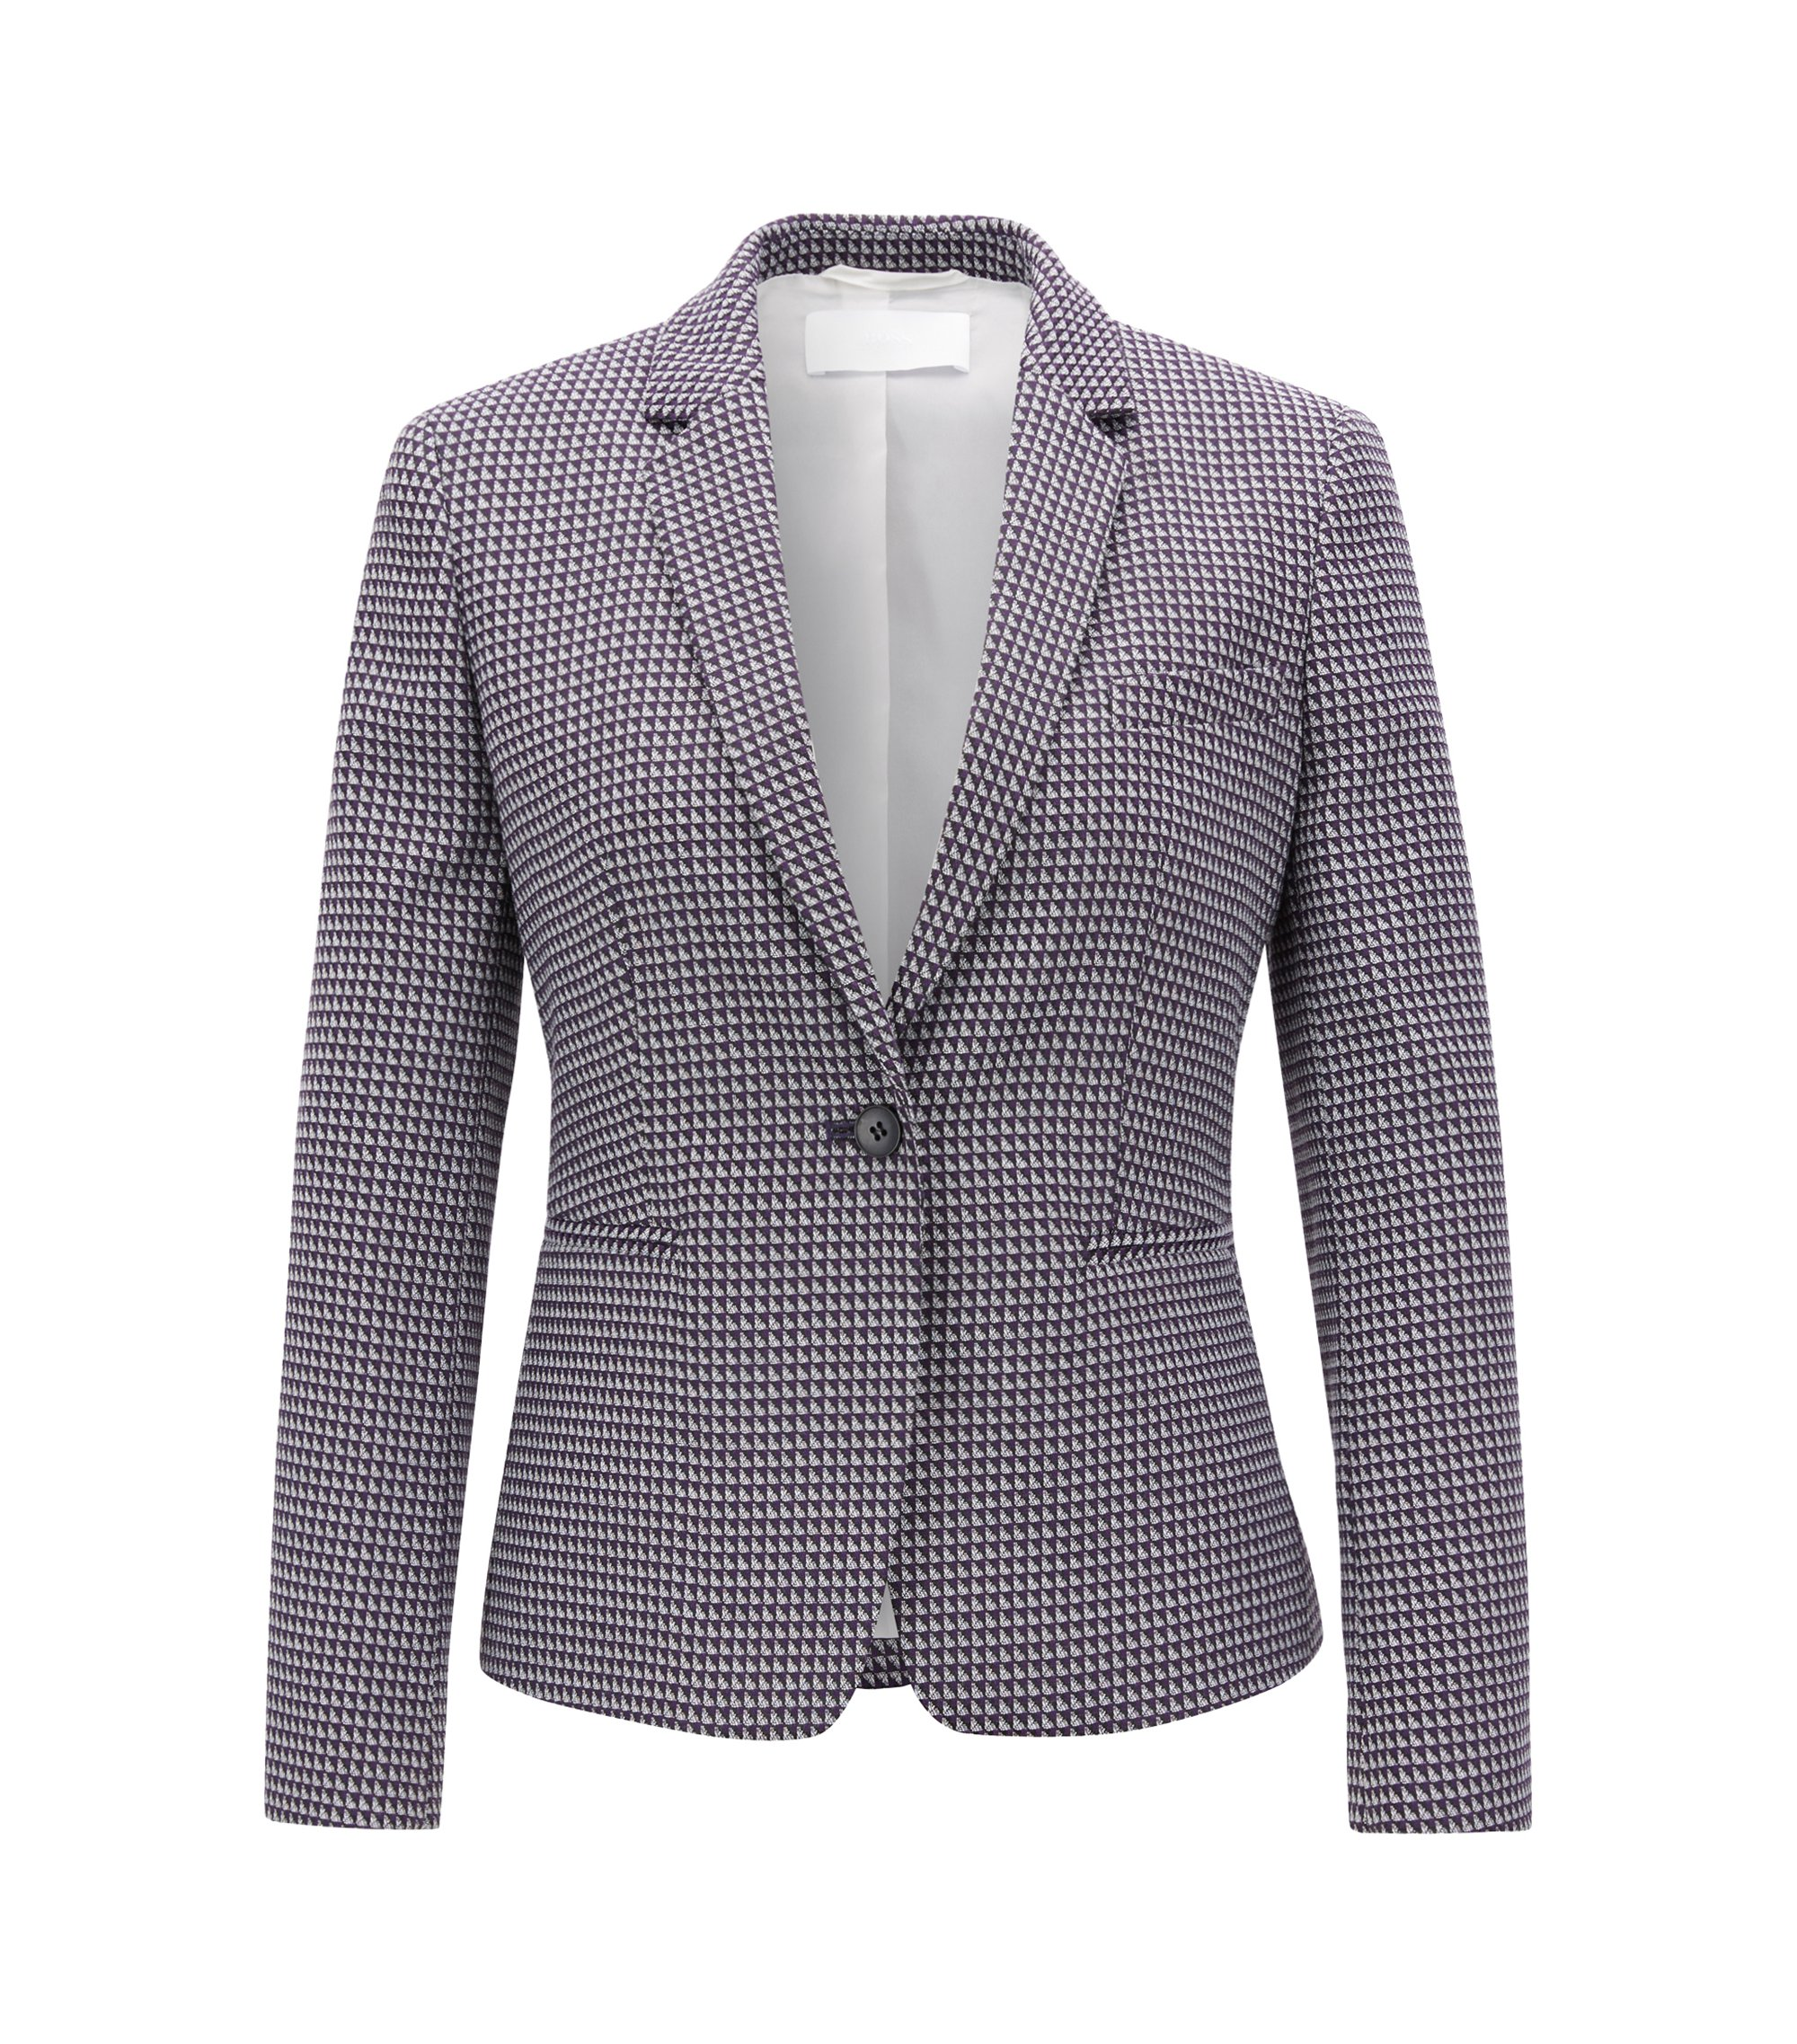 Regular-fit blazer in stretch cotton-blend jacquard, Patterned